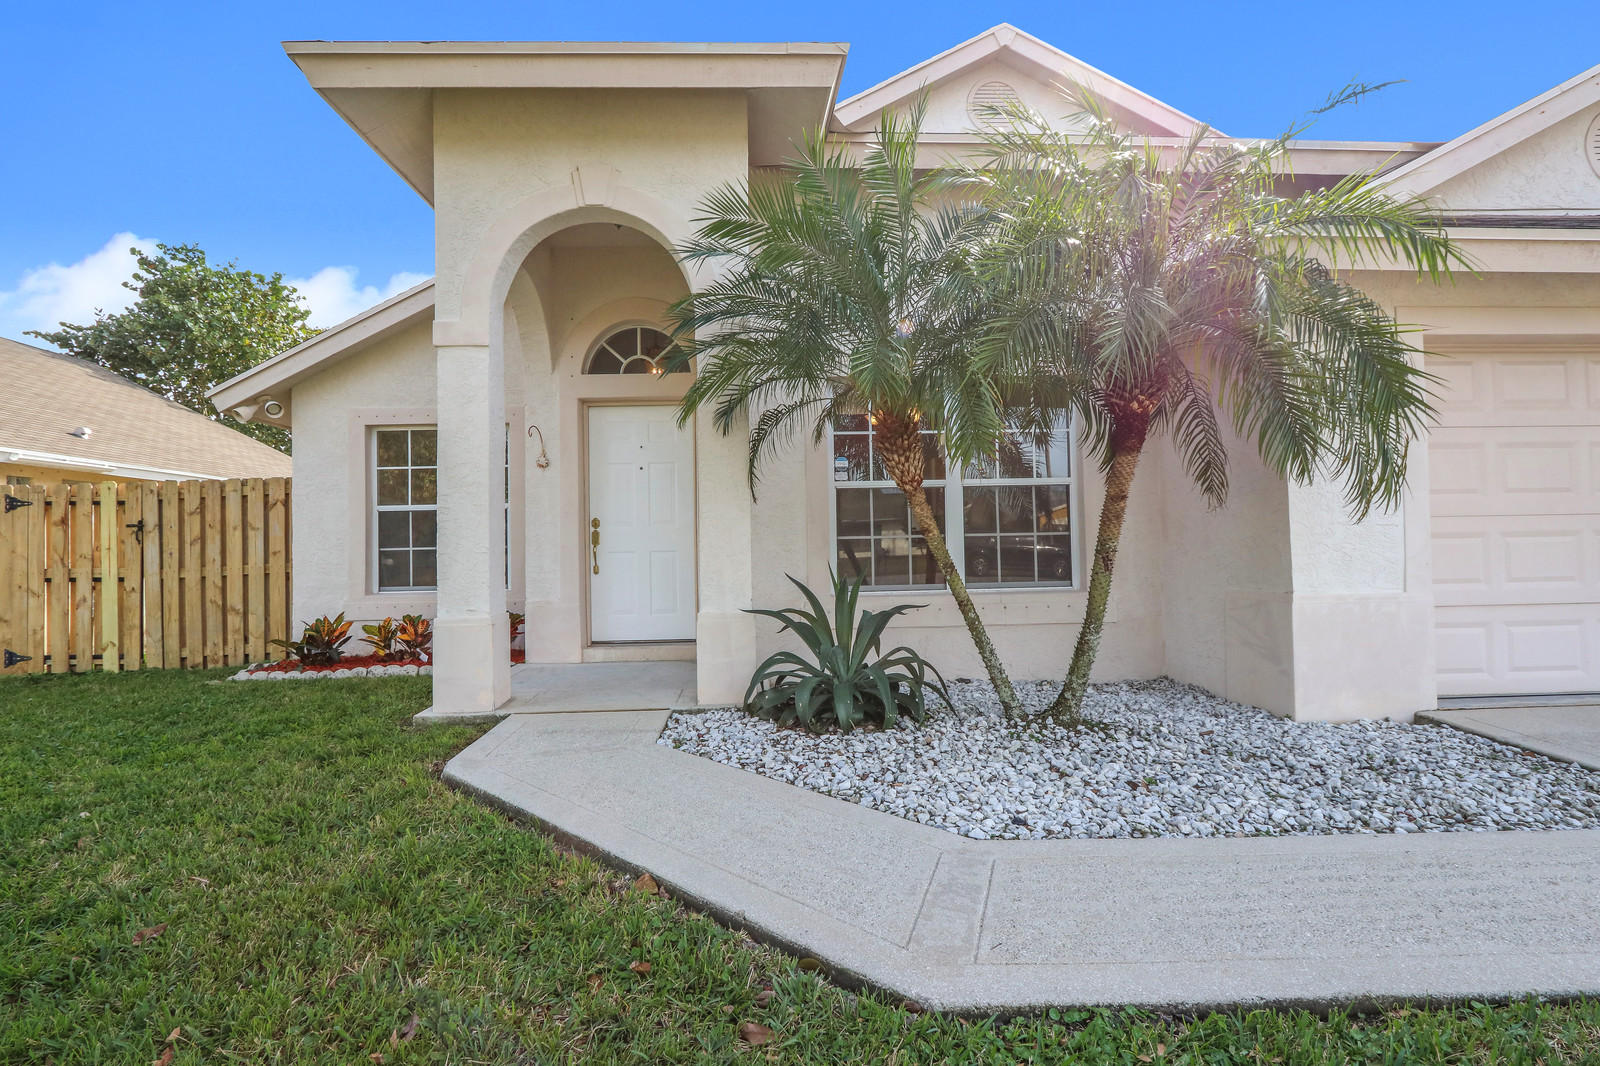 NORTH PALM BEACH HEIGHTS HOMES